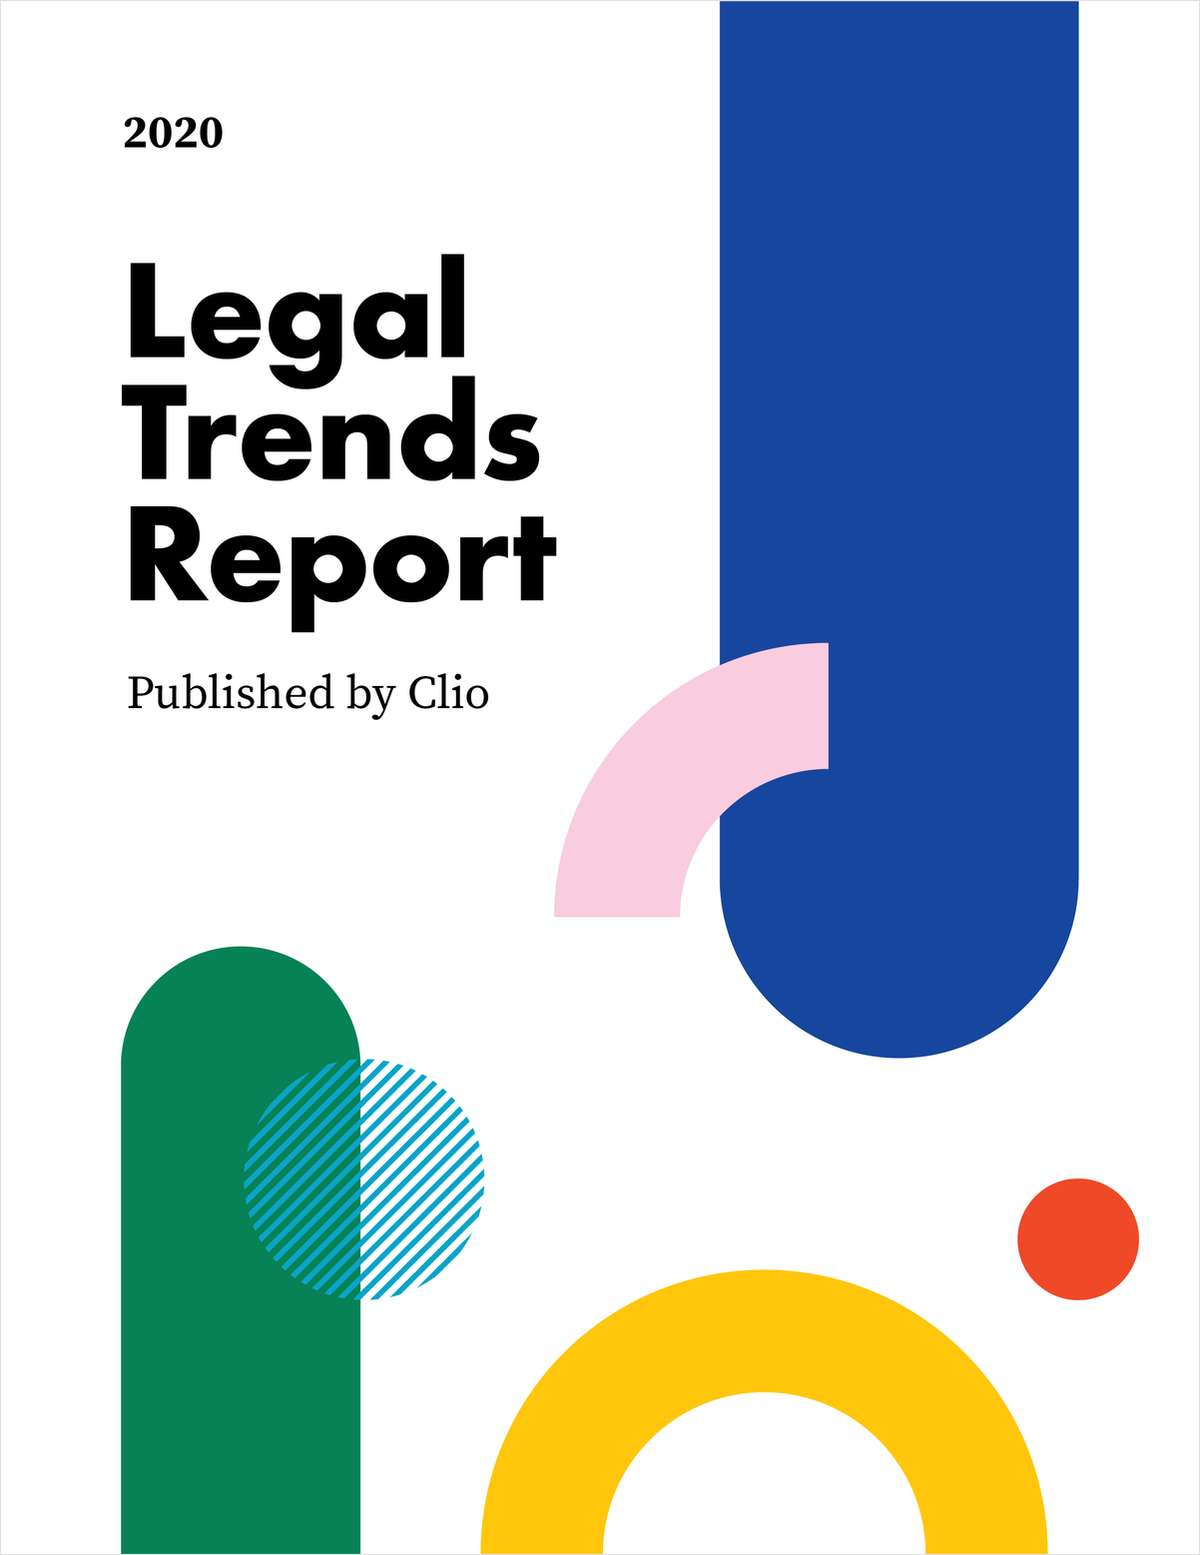 2020 Legal Trends Report